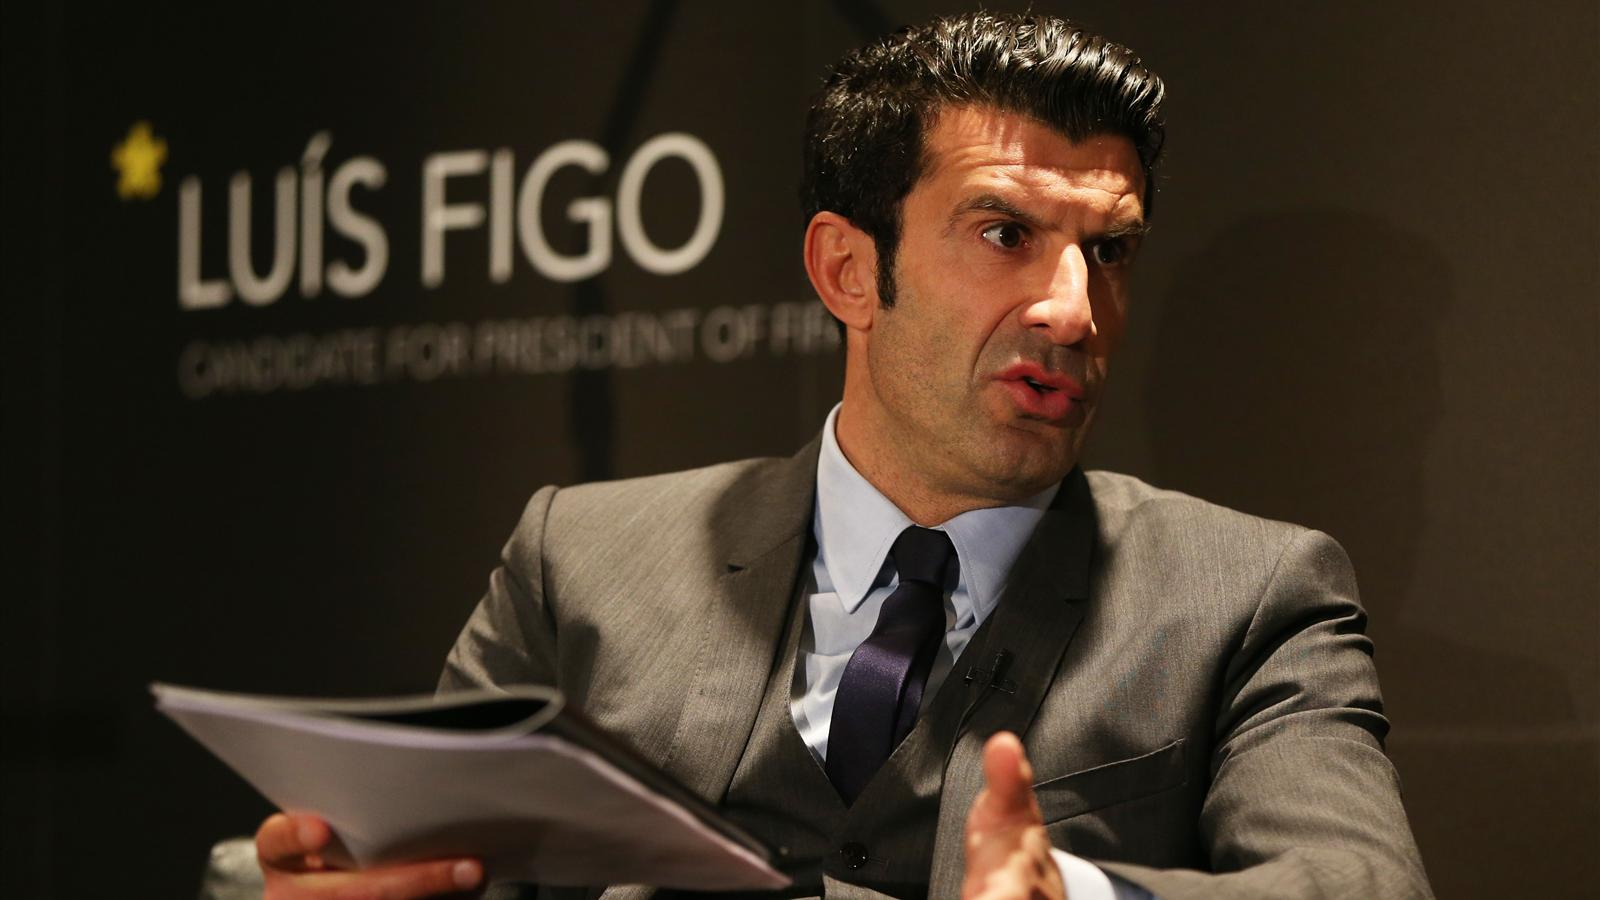 I want to fix FIFA says Luis Figo as he plans 48 team World Cup